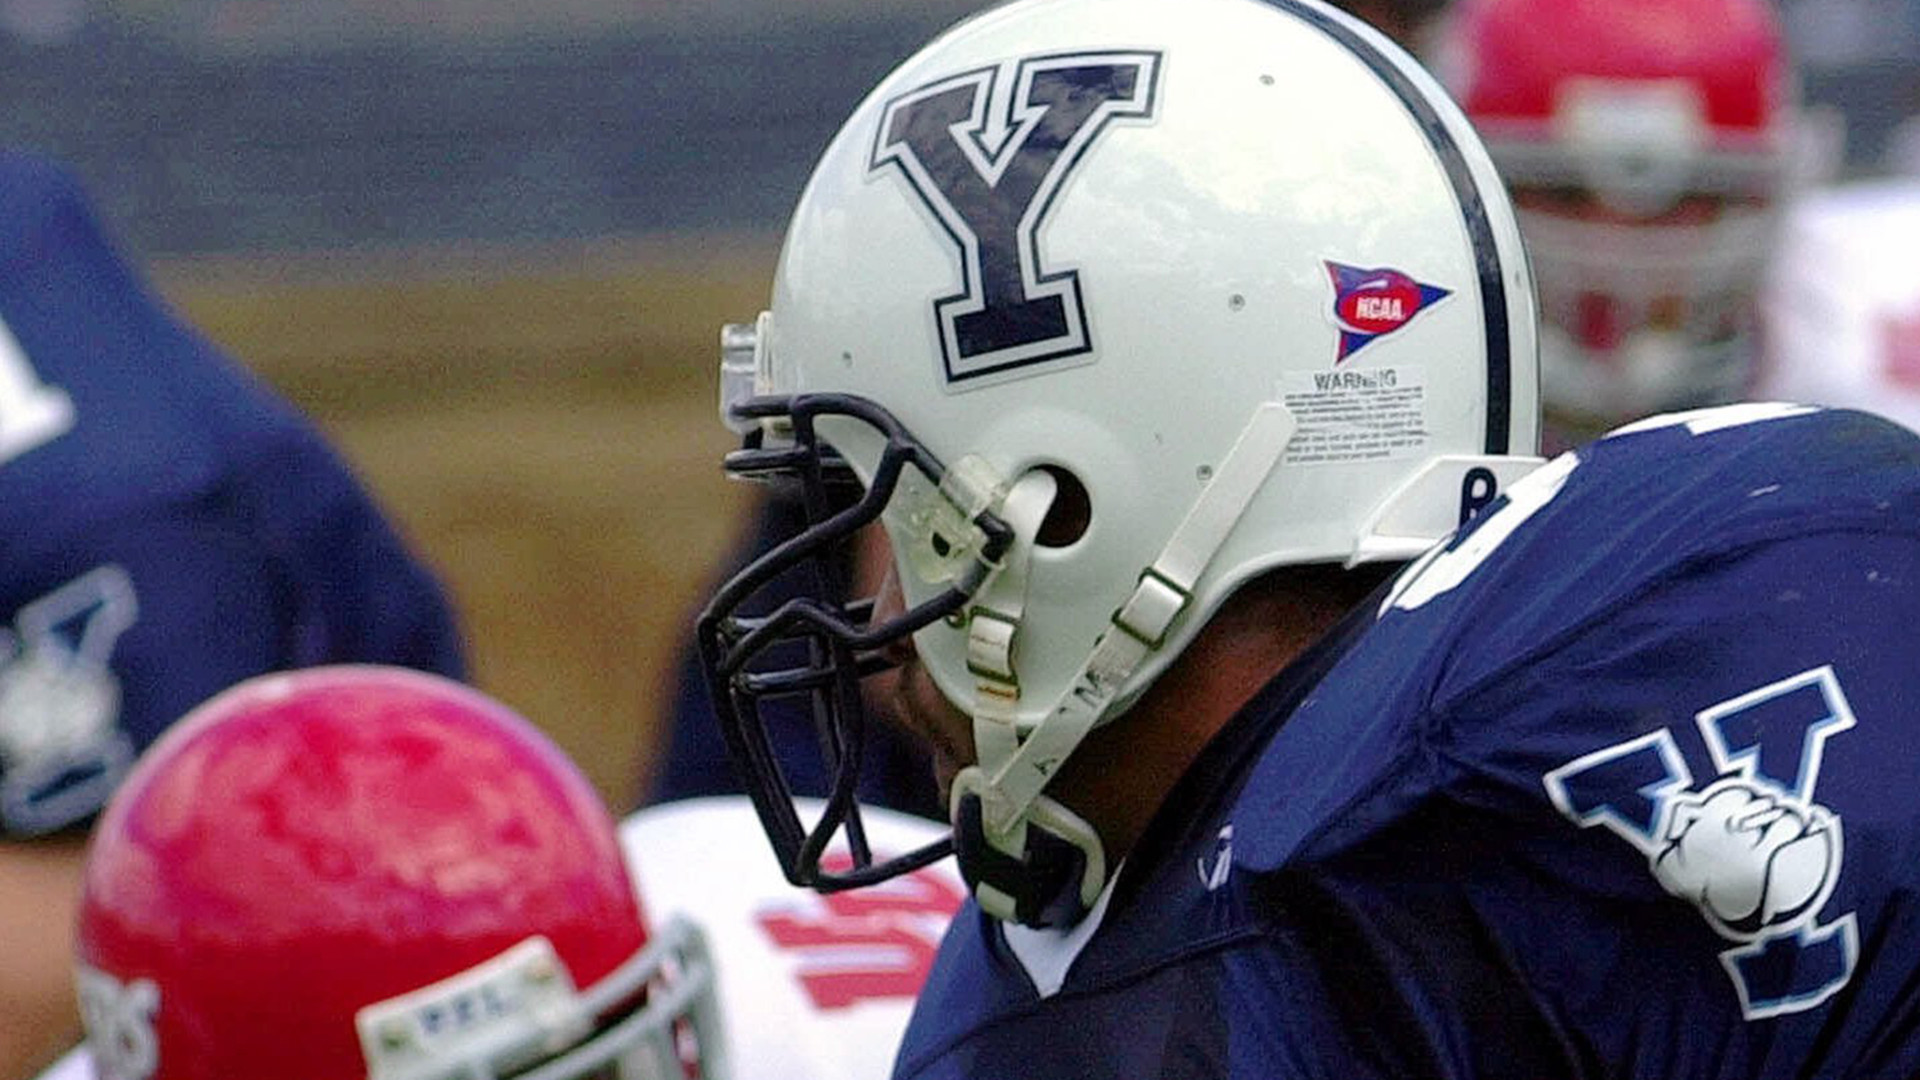 A Yale football player quits to save his brain